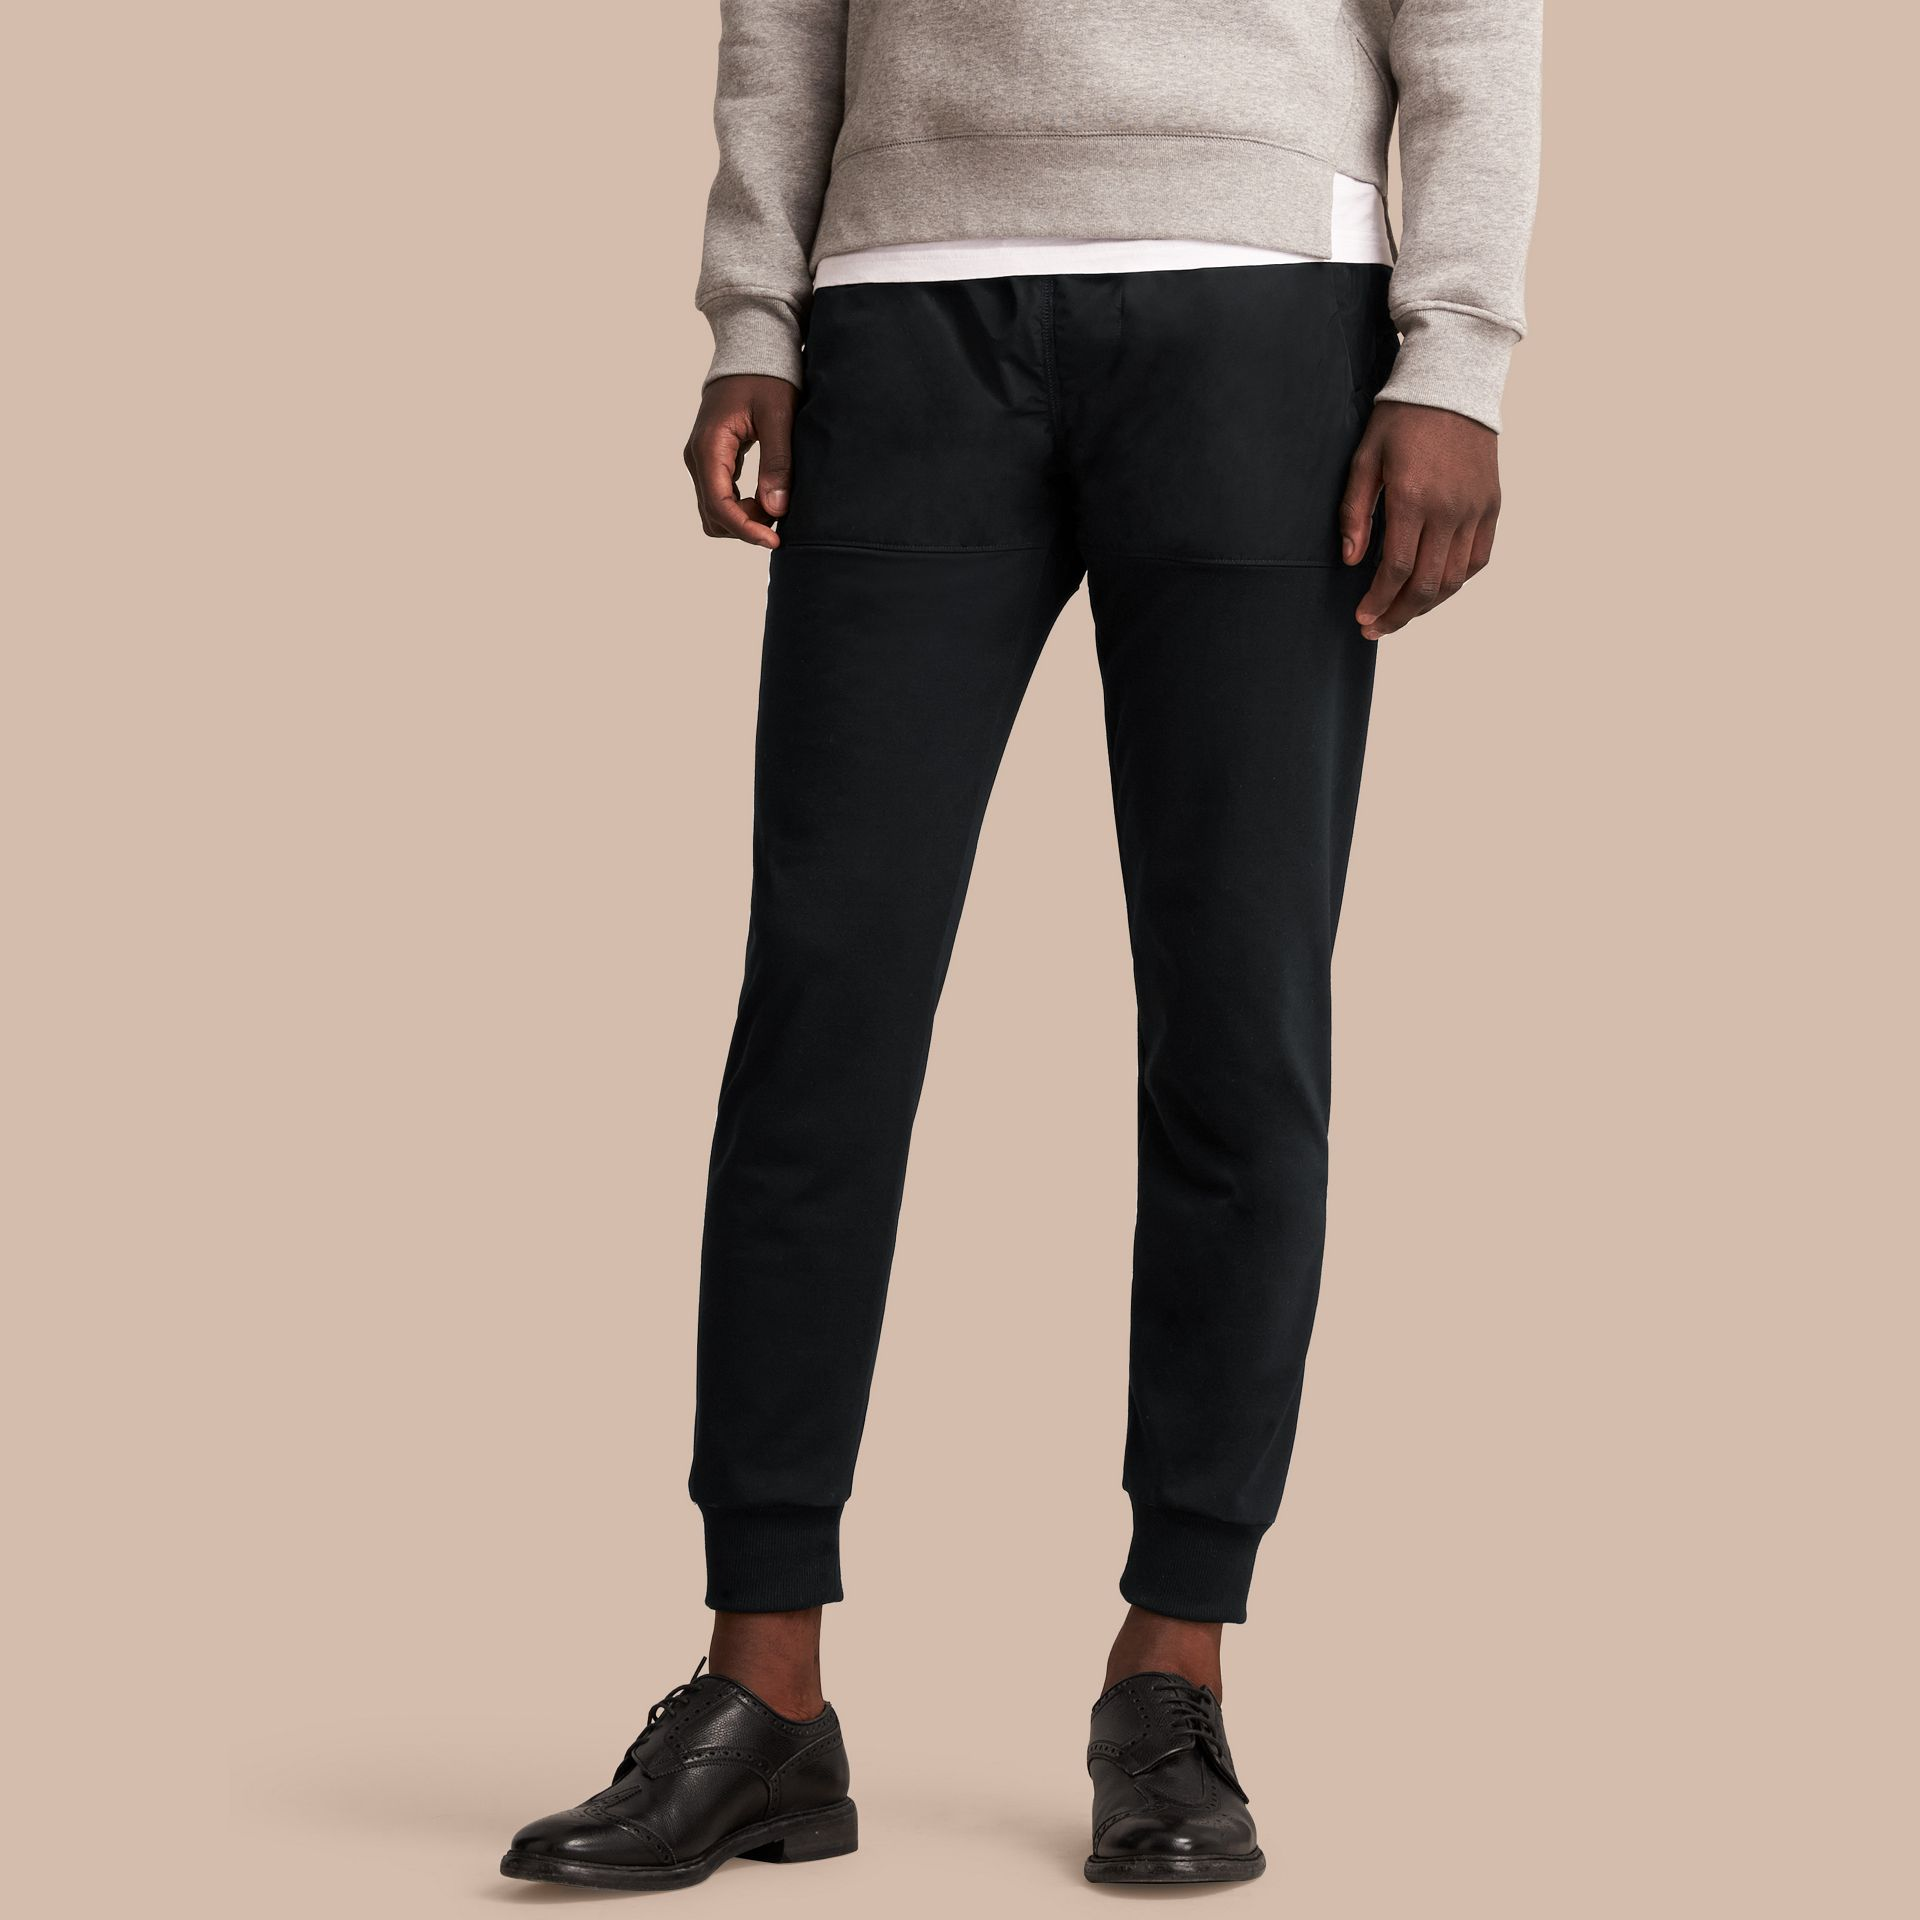 Sport Panel Cotton Blend Sweatpants in Black - Men | Burberry United Kingdom - gallery image 1